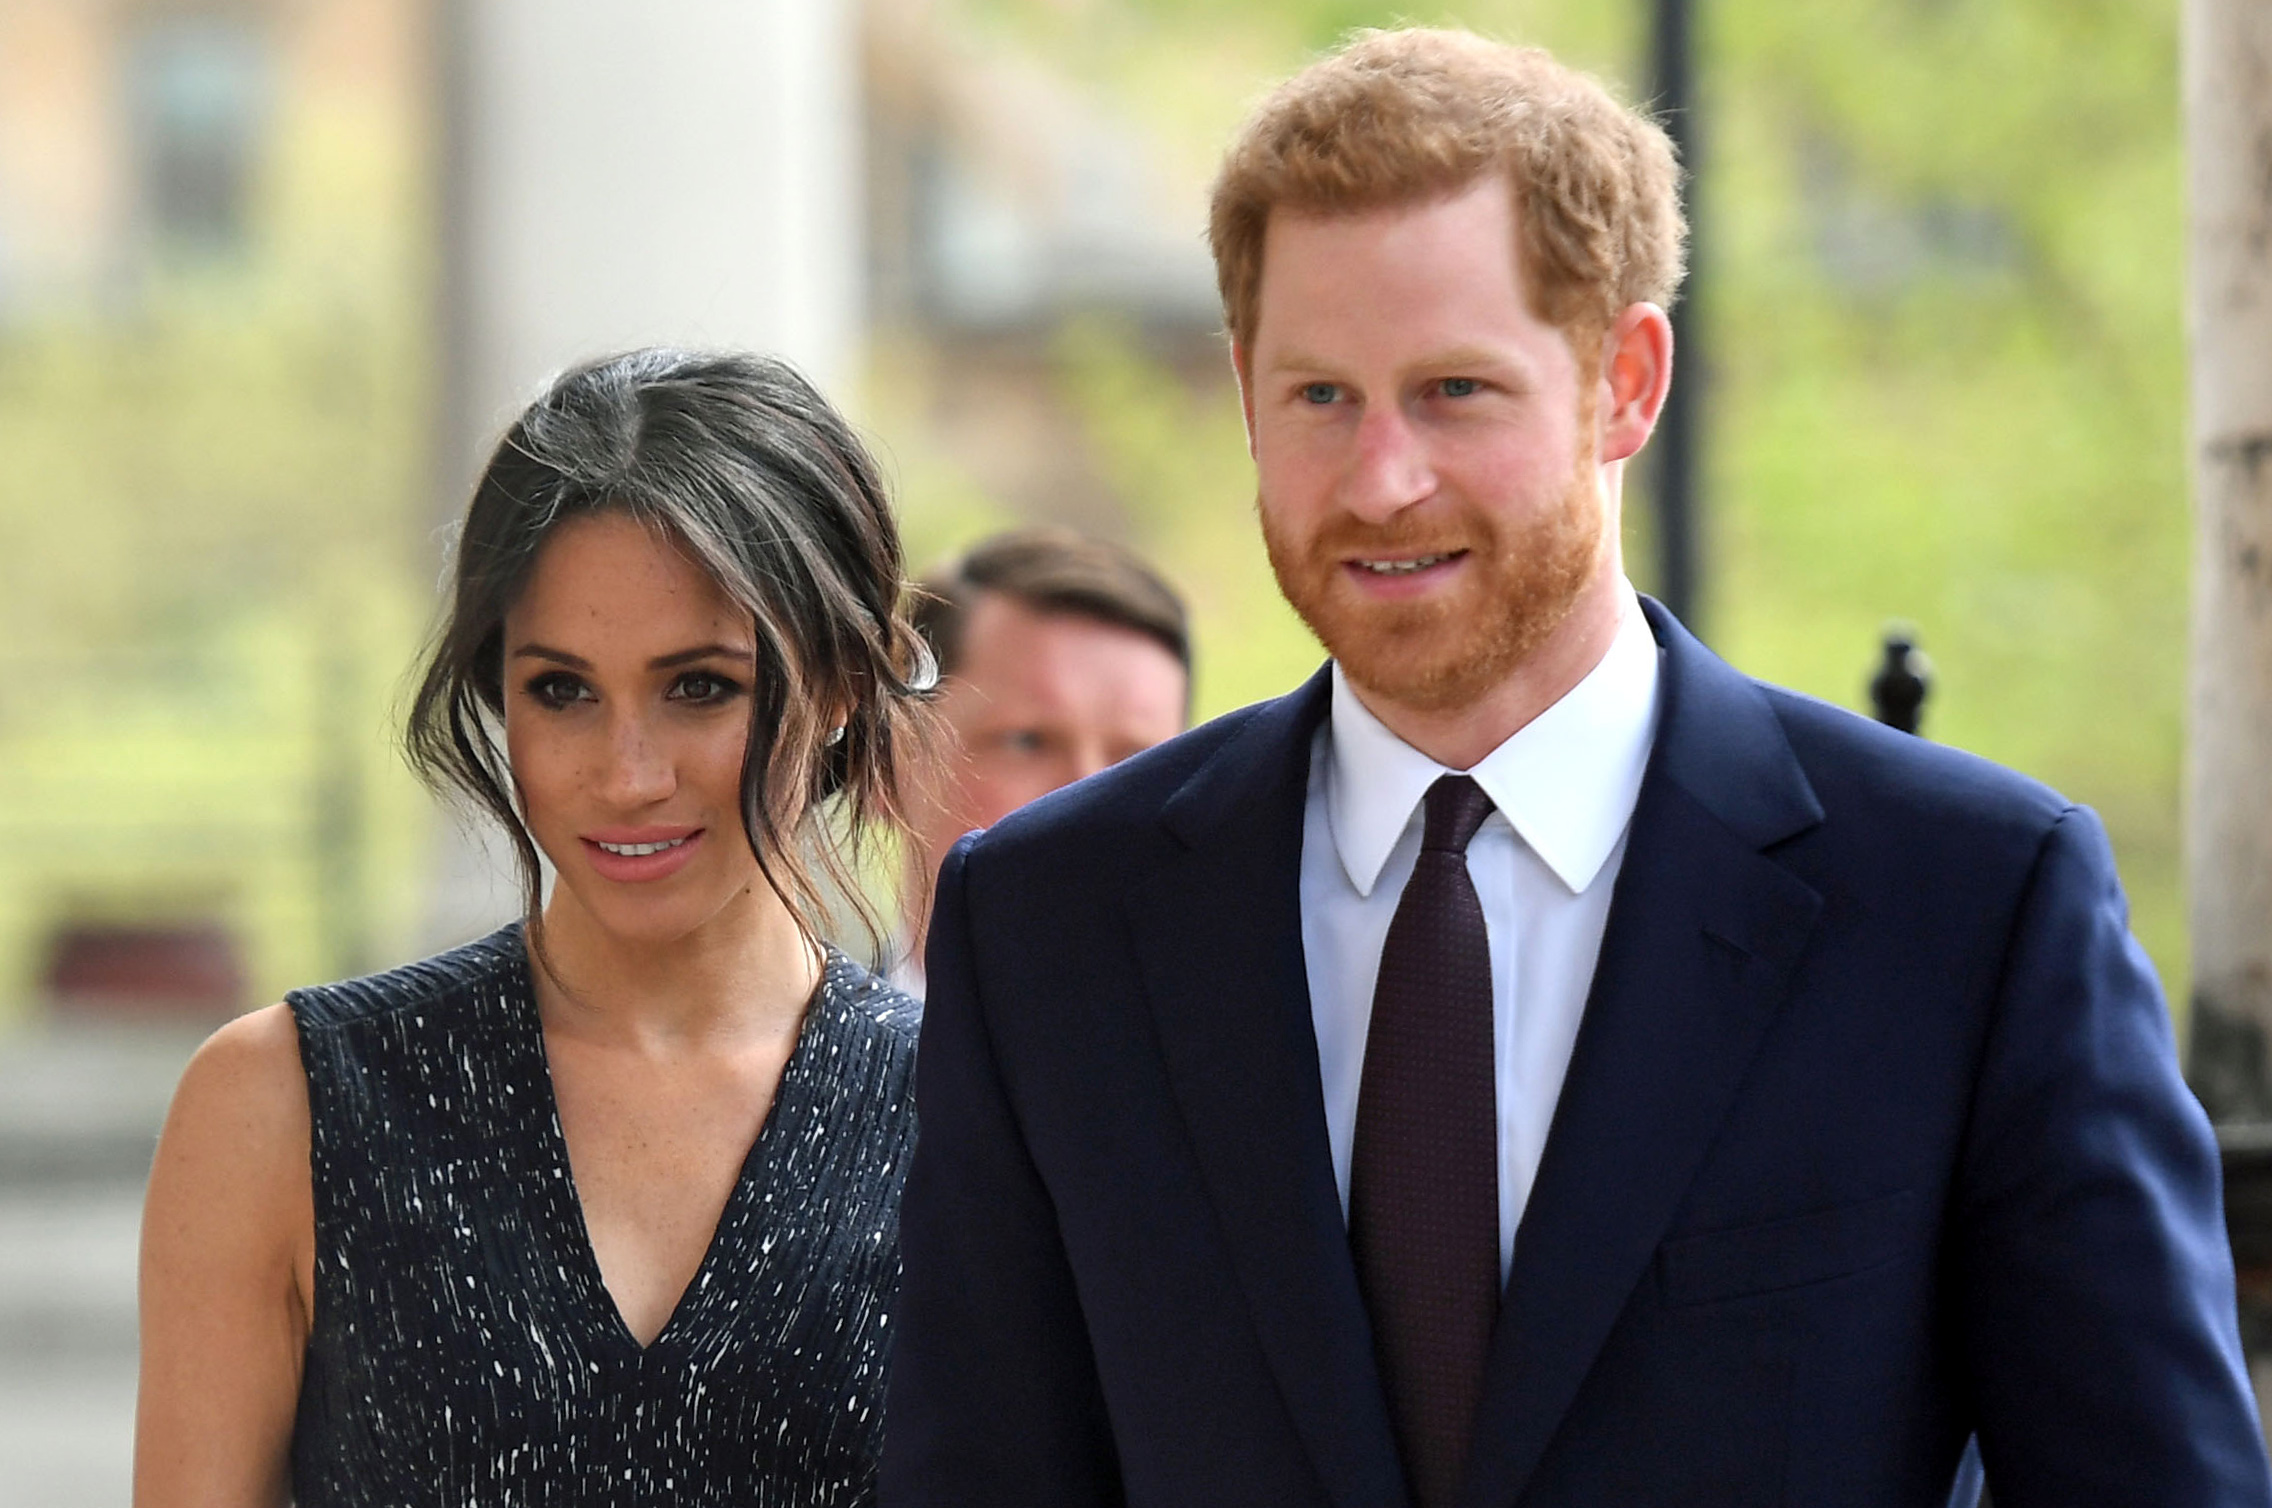 Prince Harry and Meghan Markle's Frogmore Cottage staff are going to be reassigned